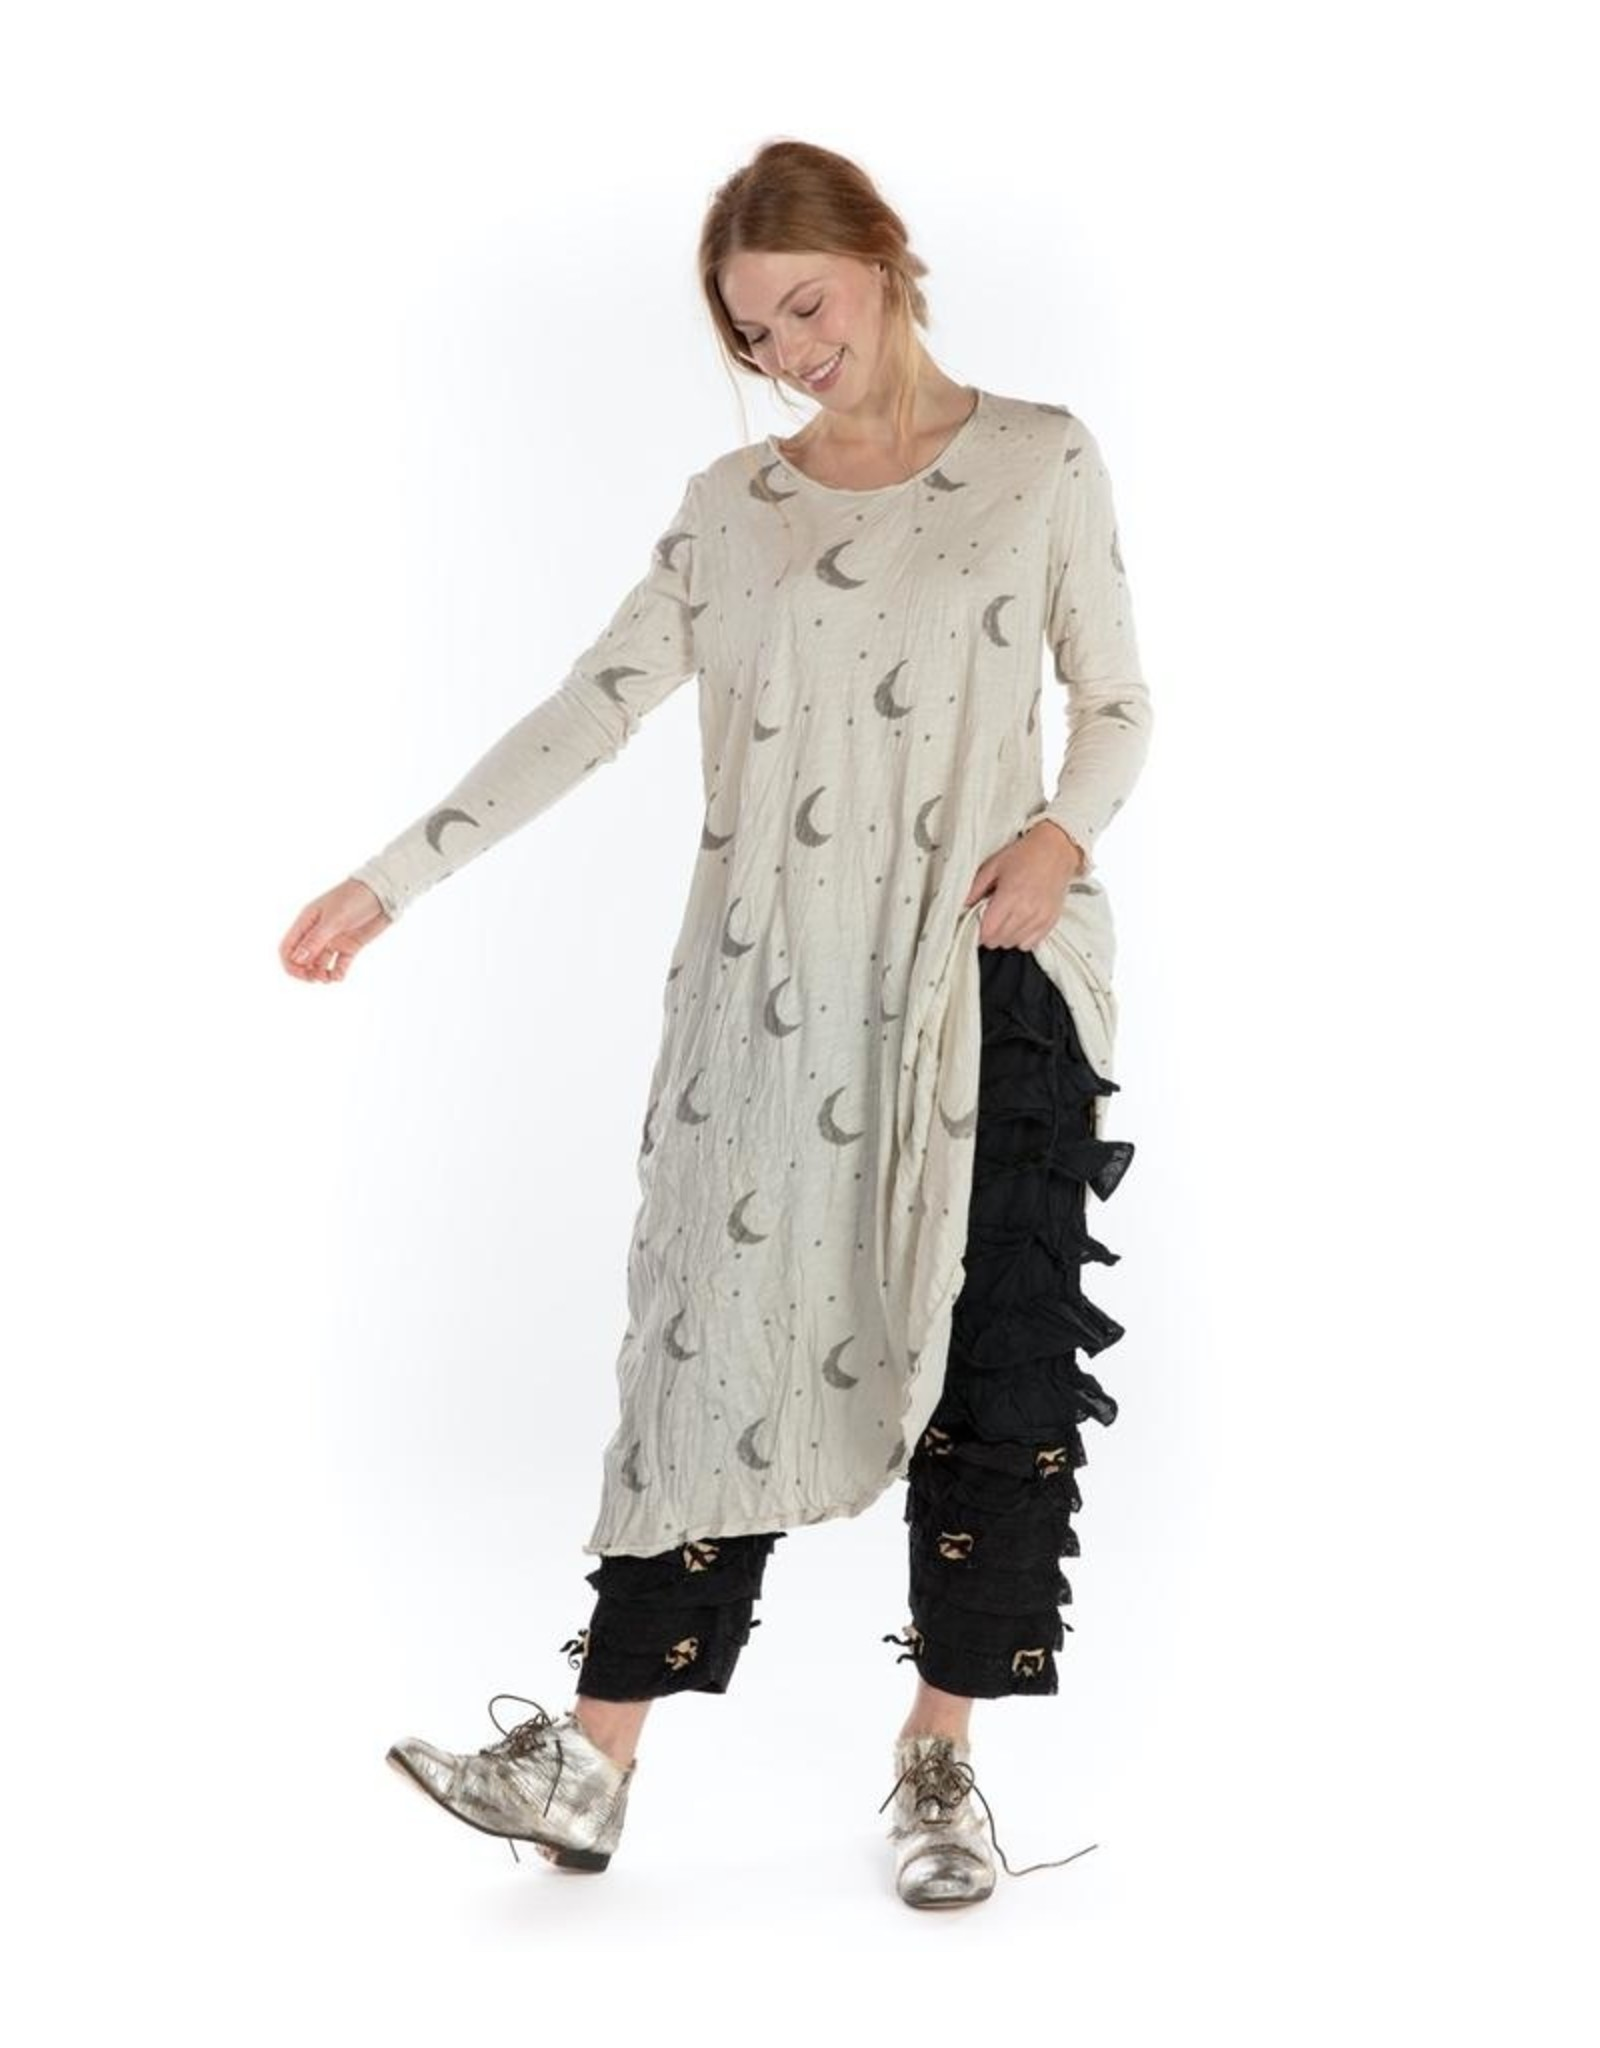 Magnolia Pearl Crescent Moon and Stars Dylan T Dress - Moonlight